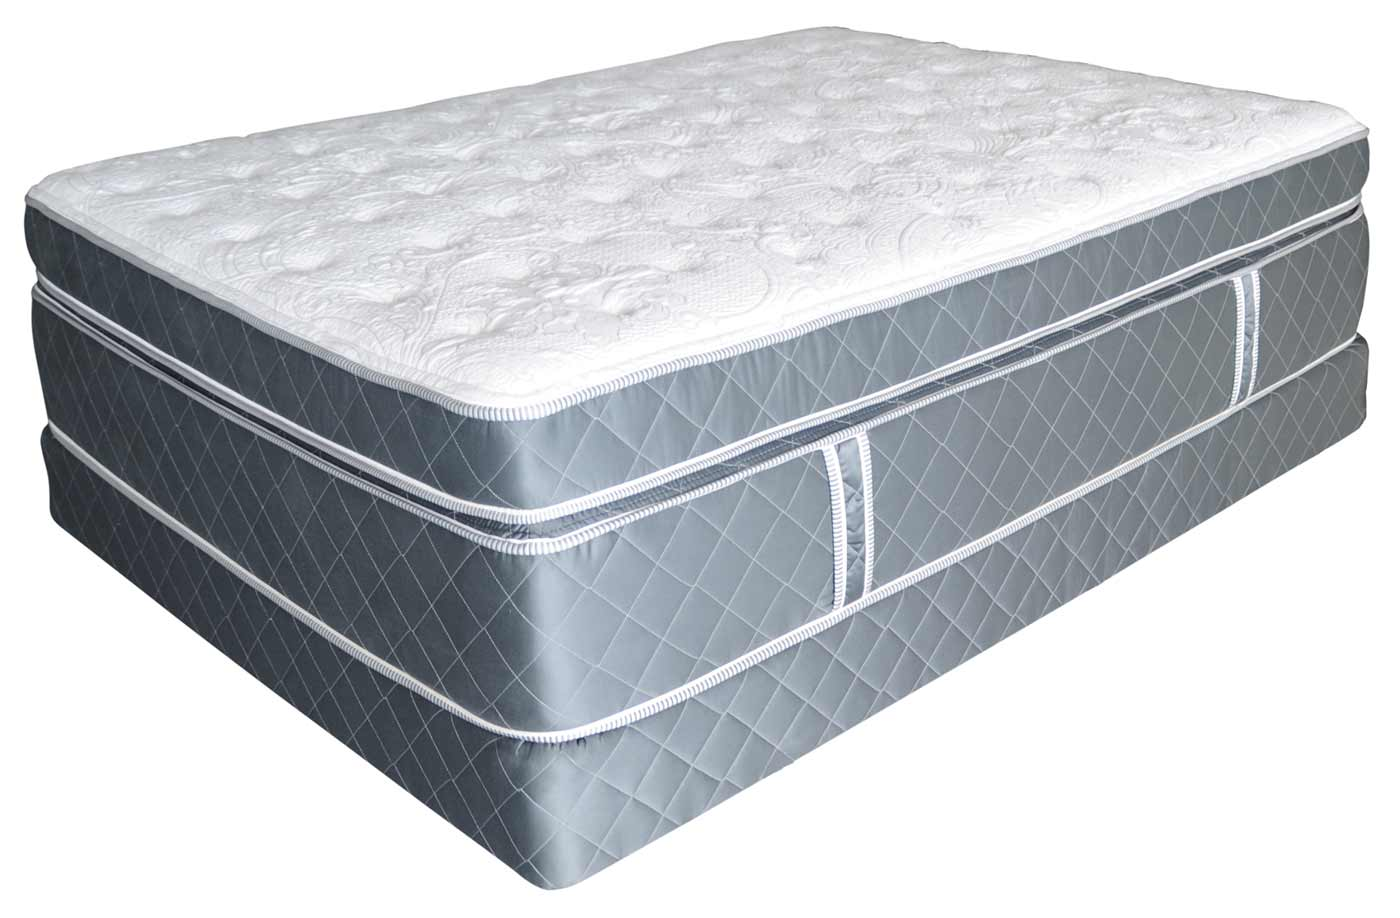 Verlo estate mattress for home